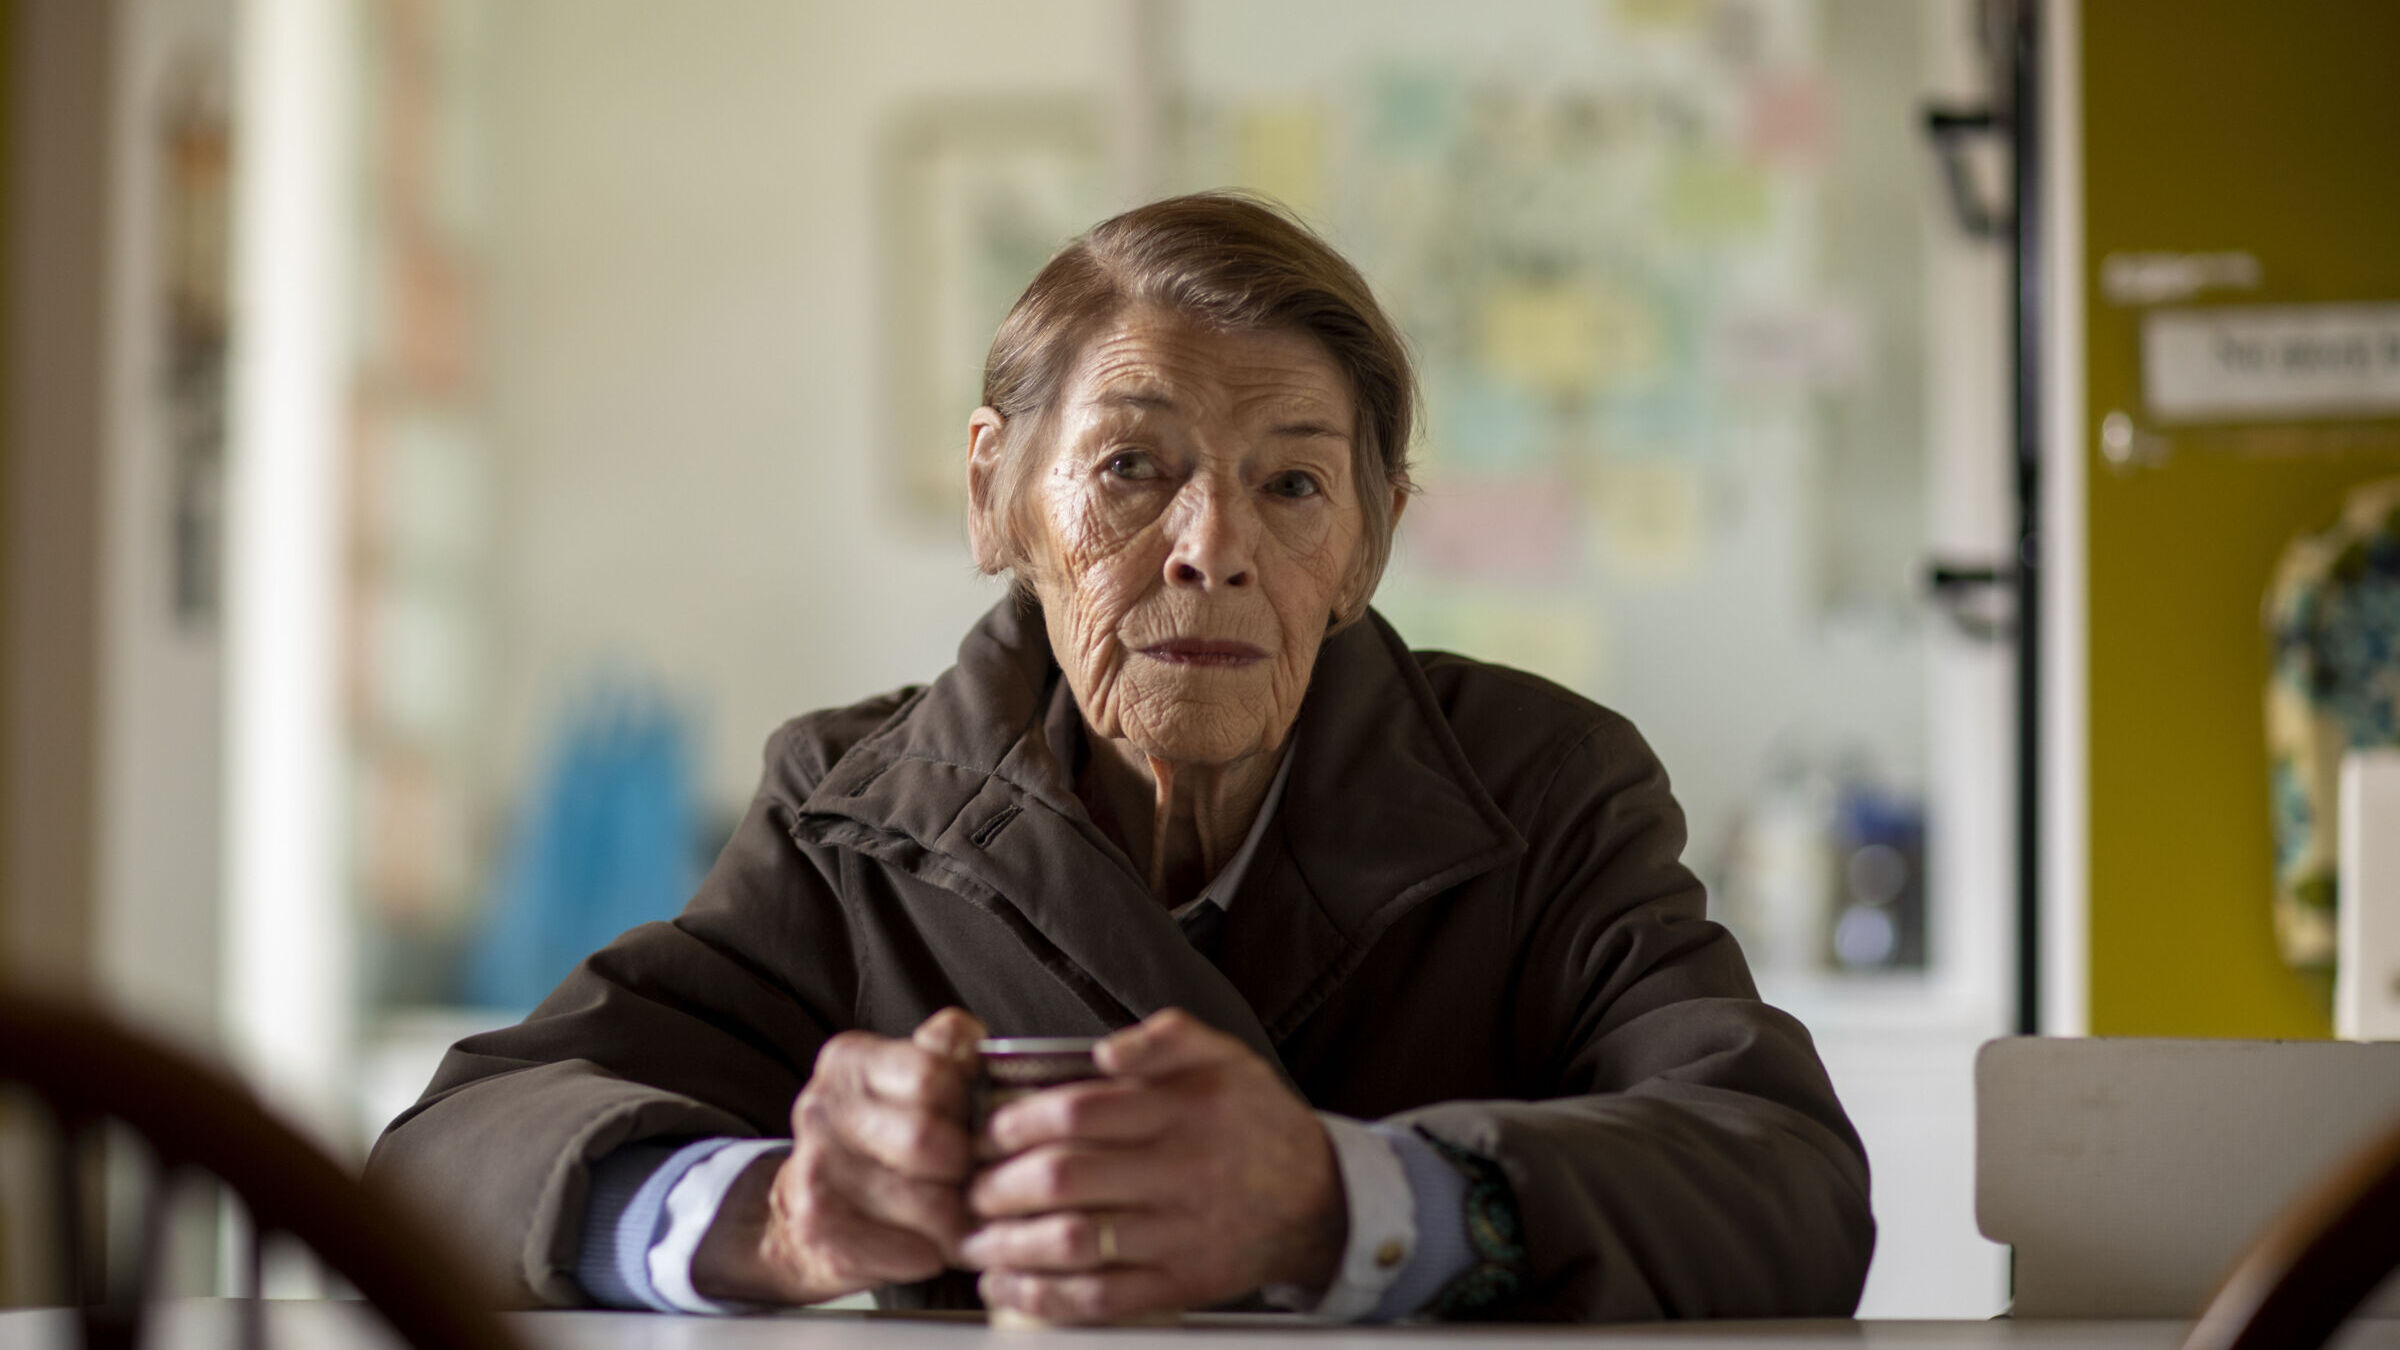 An elderly woman with short grey hair sits in a brown overcoat at a kitchen table, her hands around a mug of tea. She stares thoughtfully in the distance. Behind her is a blurred view of a wall with multicolor post-it notes.